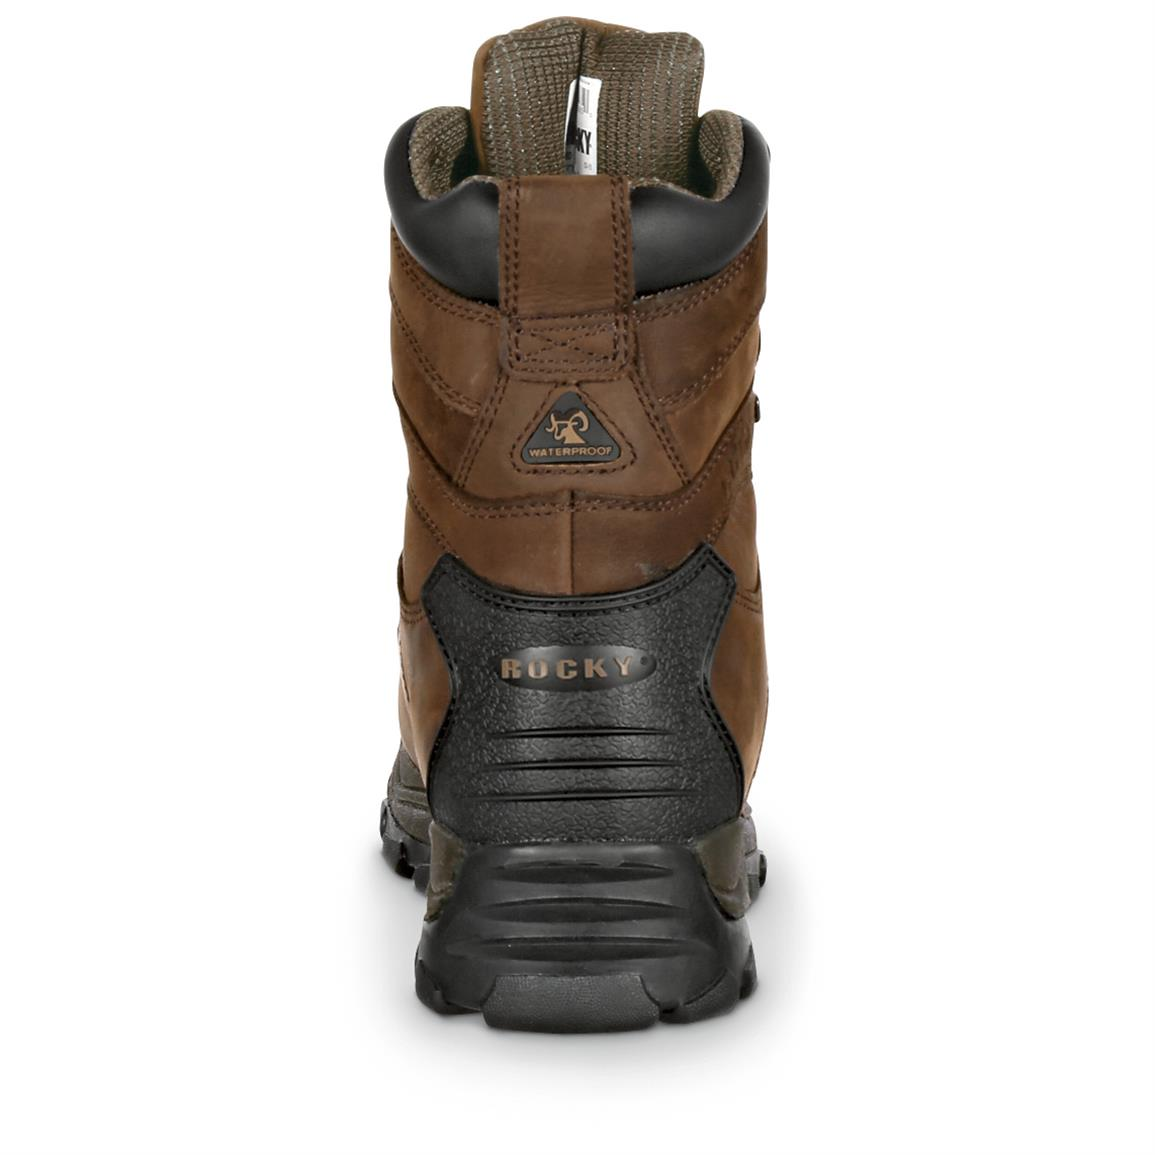 Guaranteed Rocky Waterproof construction for sure-dry comfort